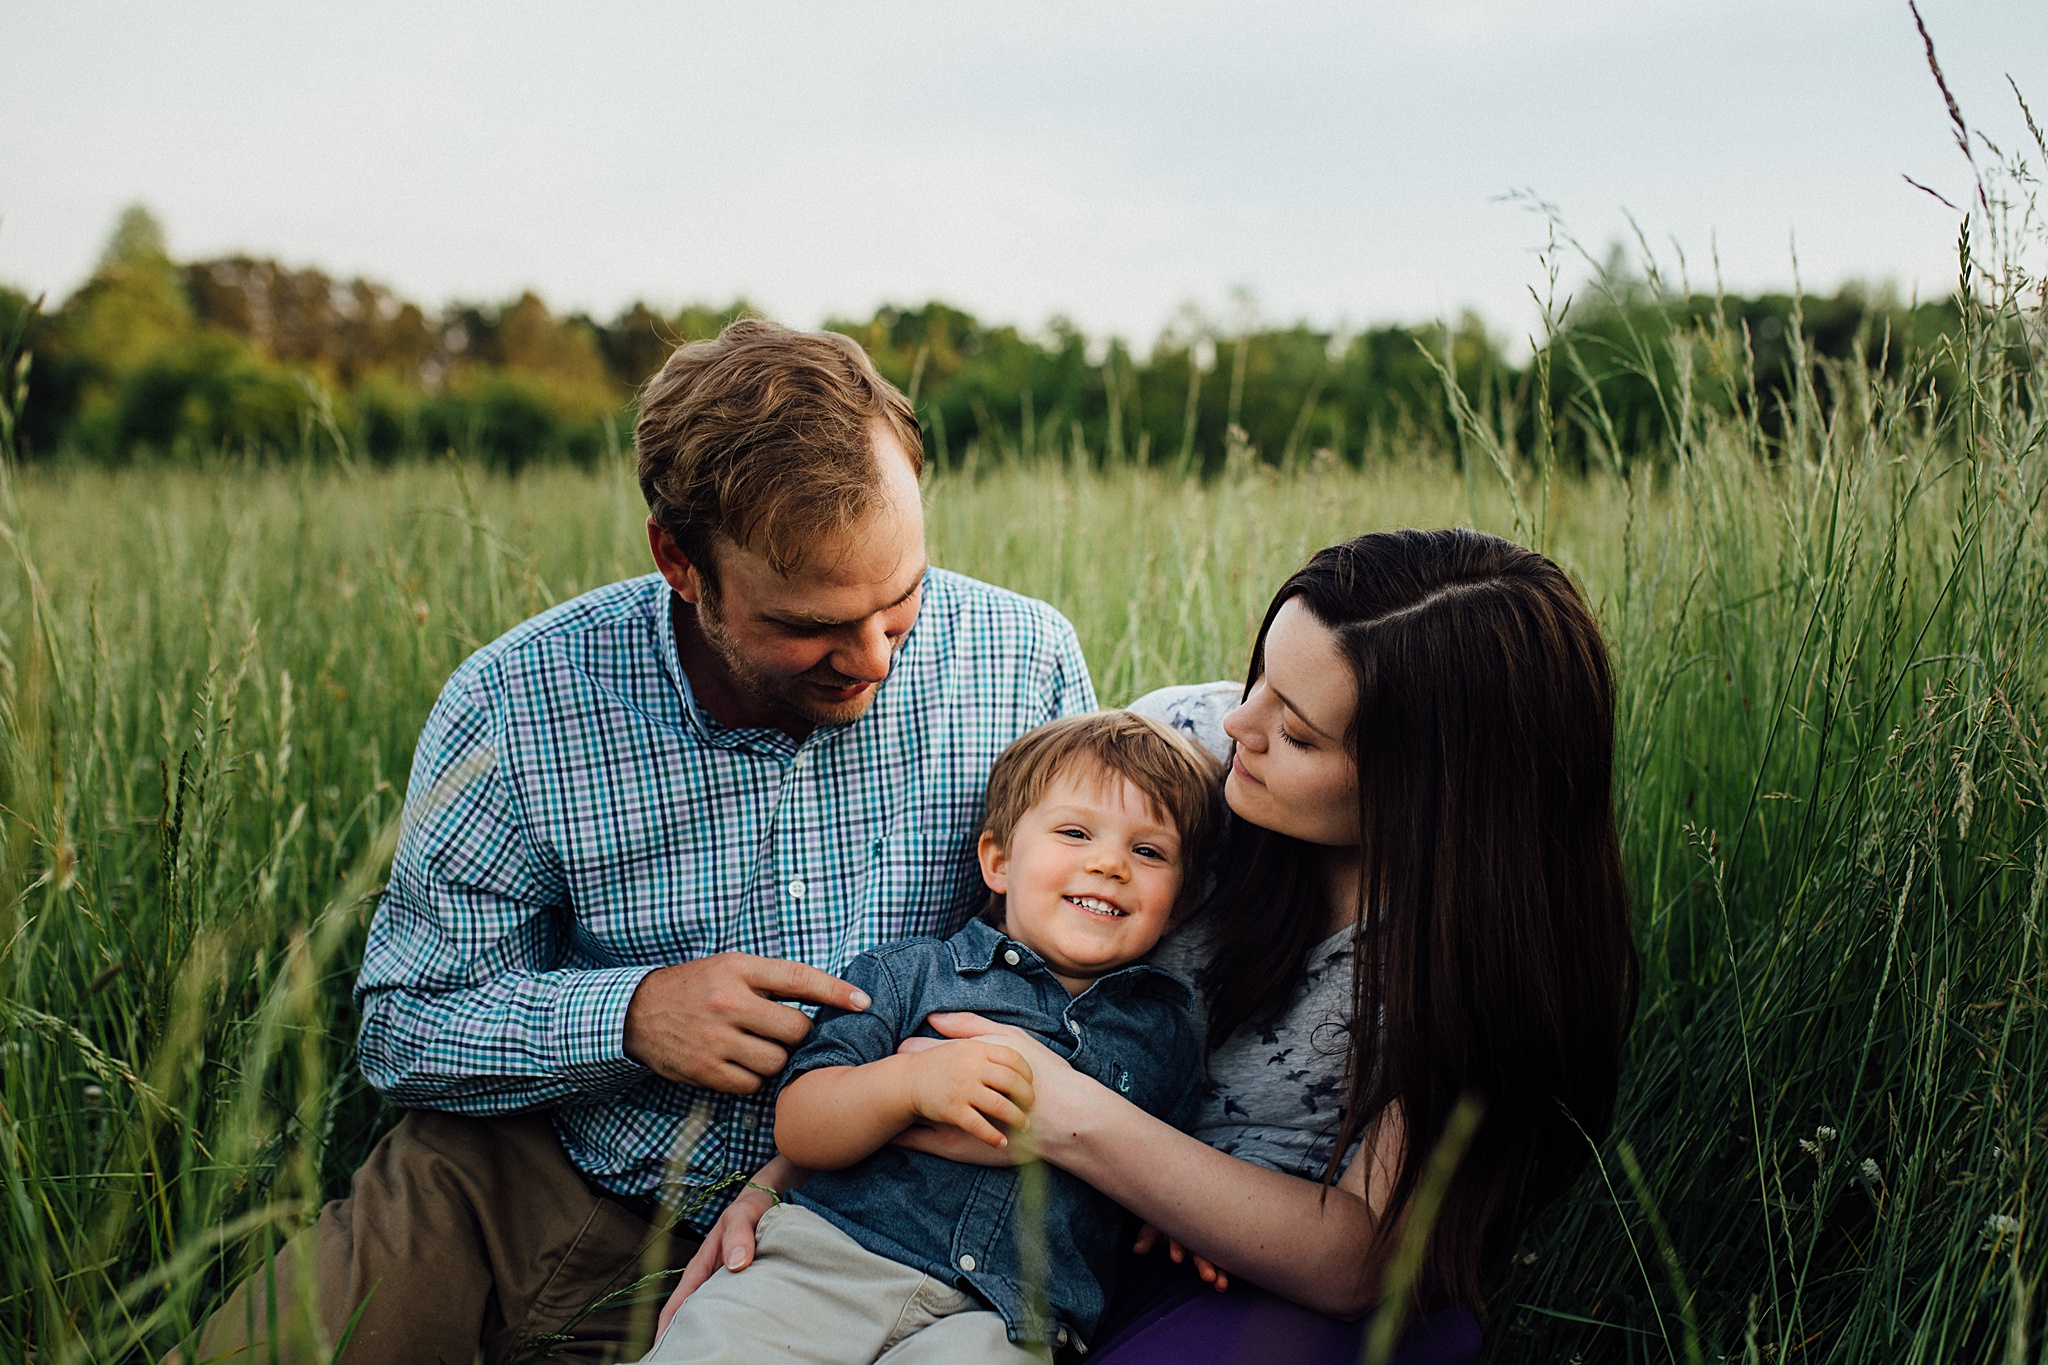 Family portrait photographer woodstock-3.jpg